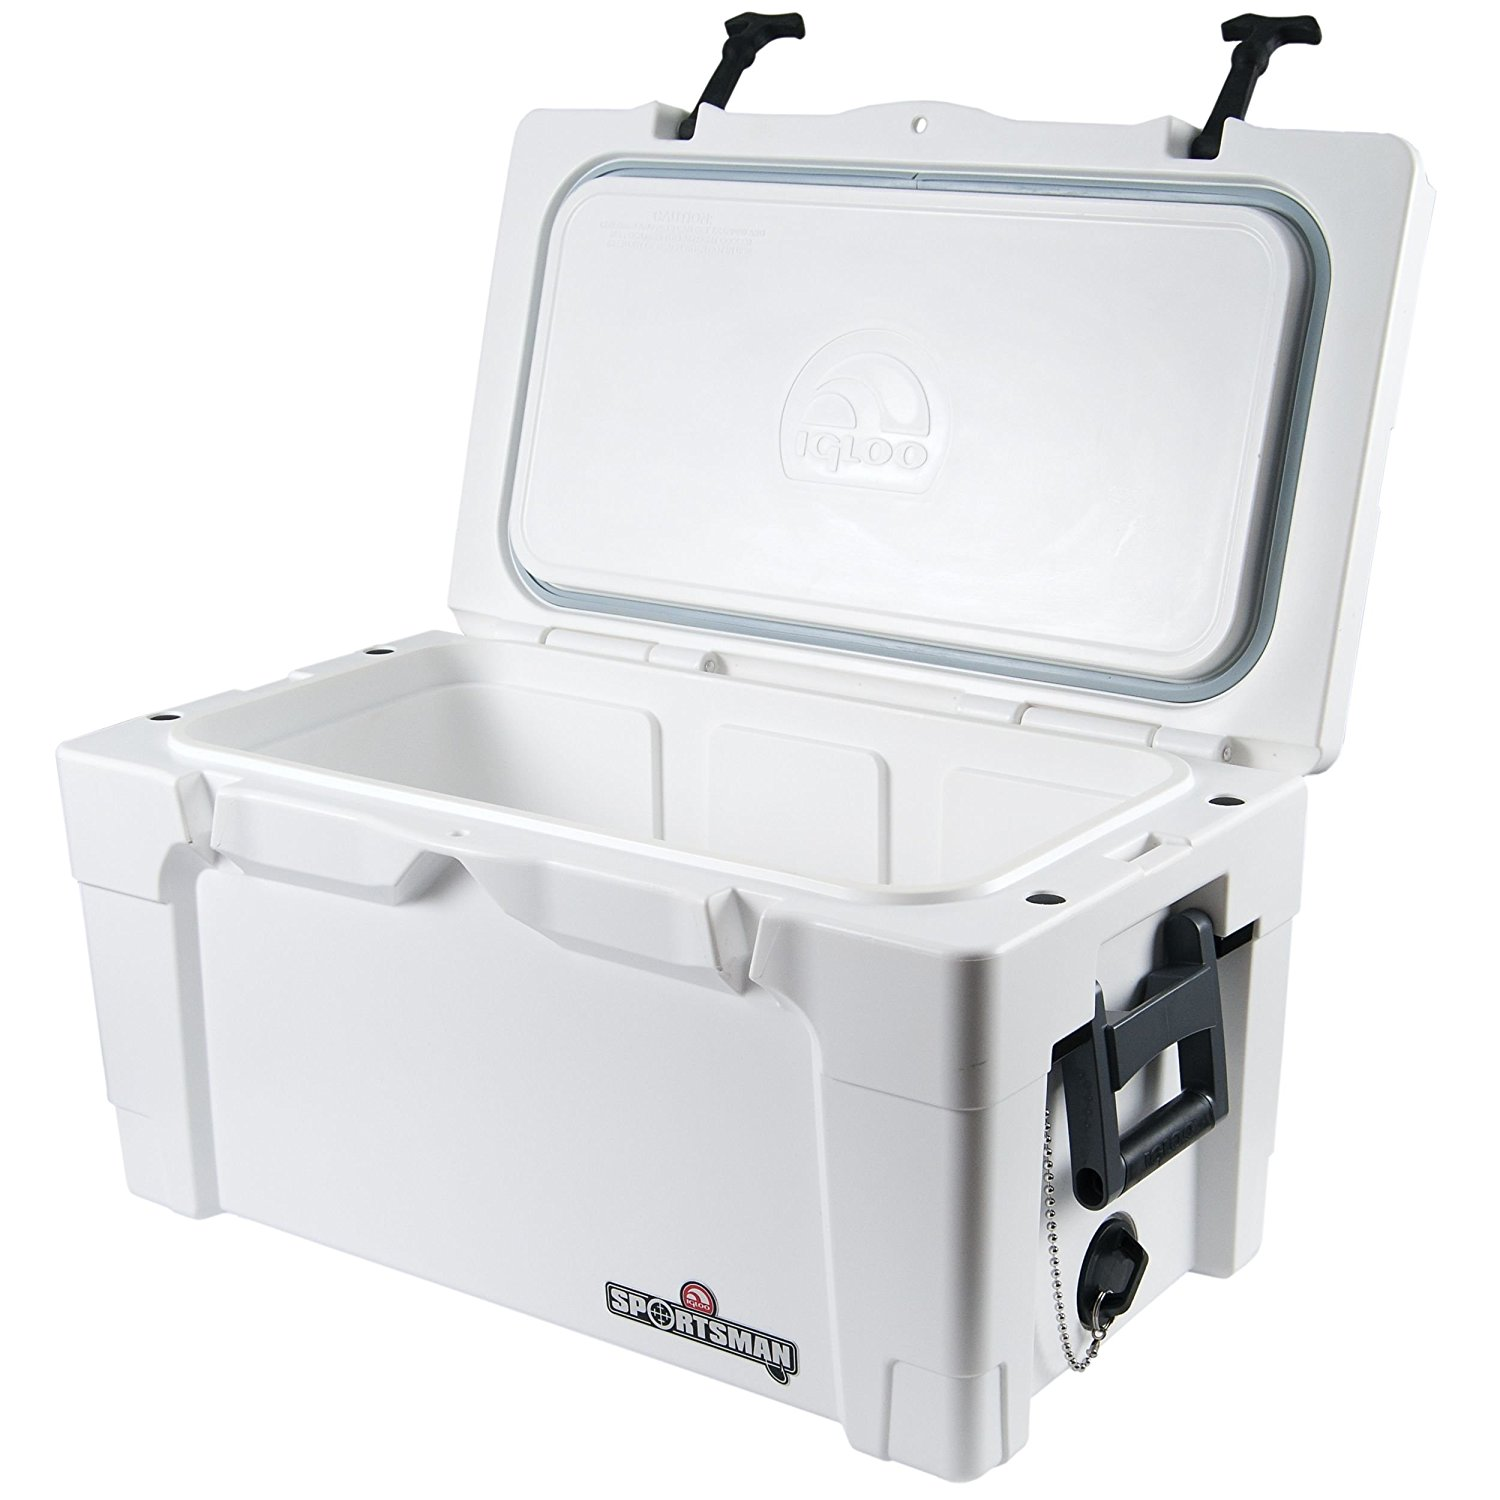 Cheapest but best value roto molded cooler